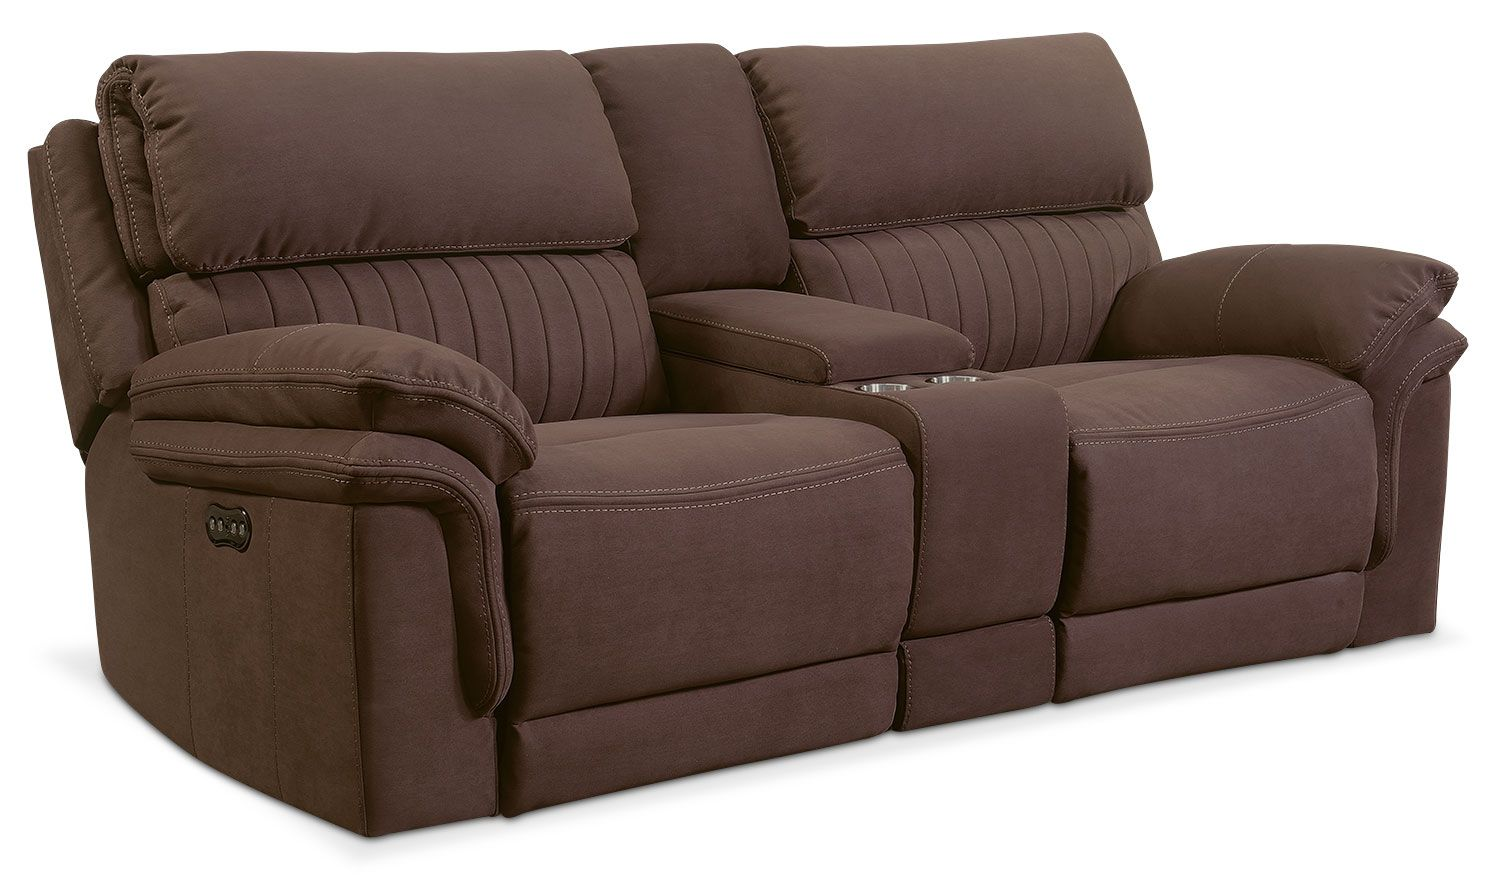 Living Room Furniture Monterey 3 Piece Power Reclining Sofa With Console Mocha Power Reclining Sofa Power Reclining Loveseat Reclining Sofa